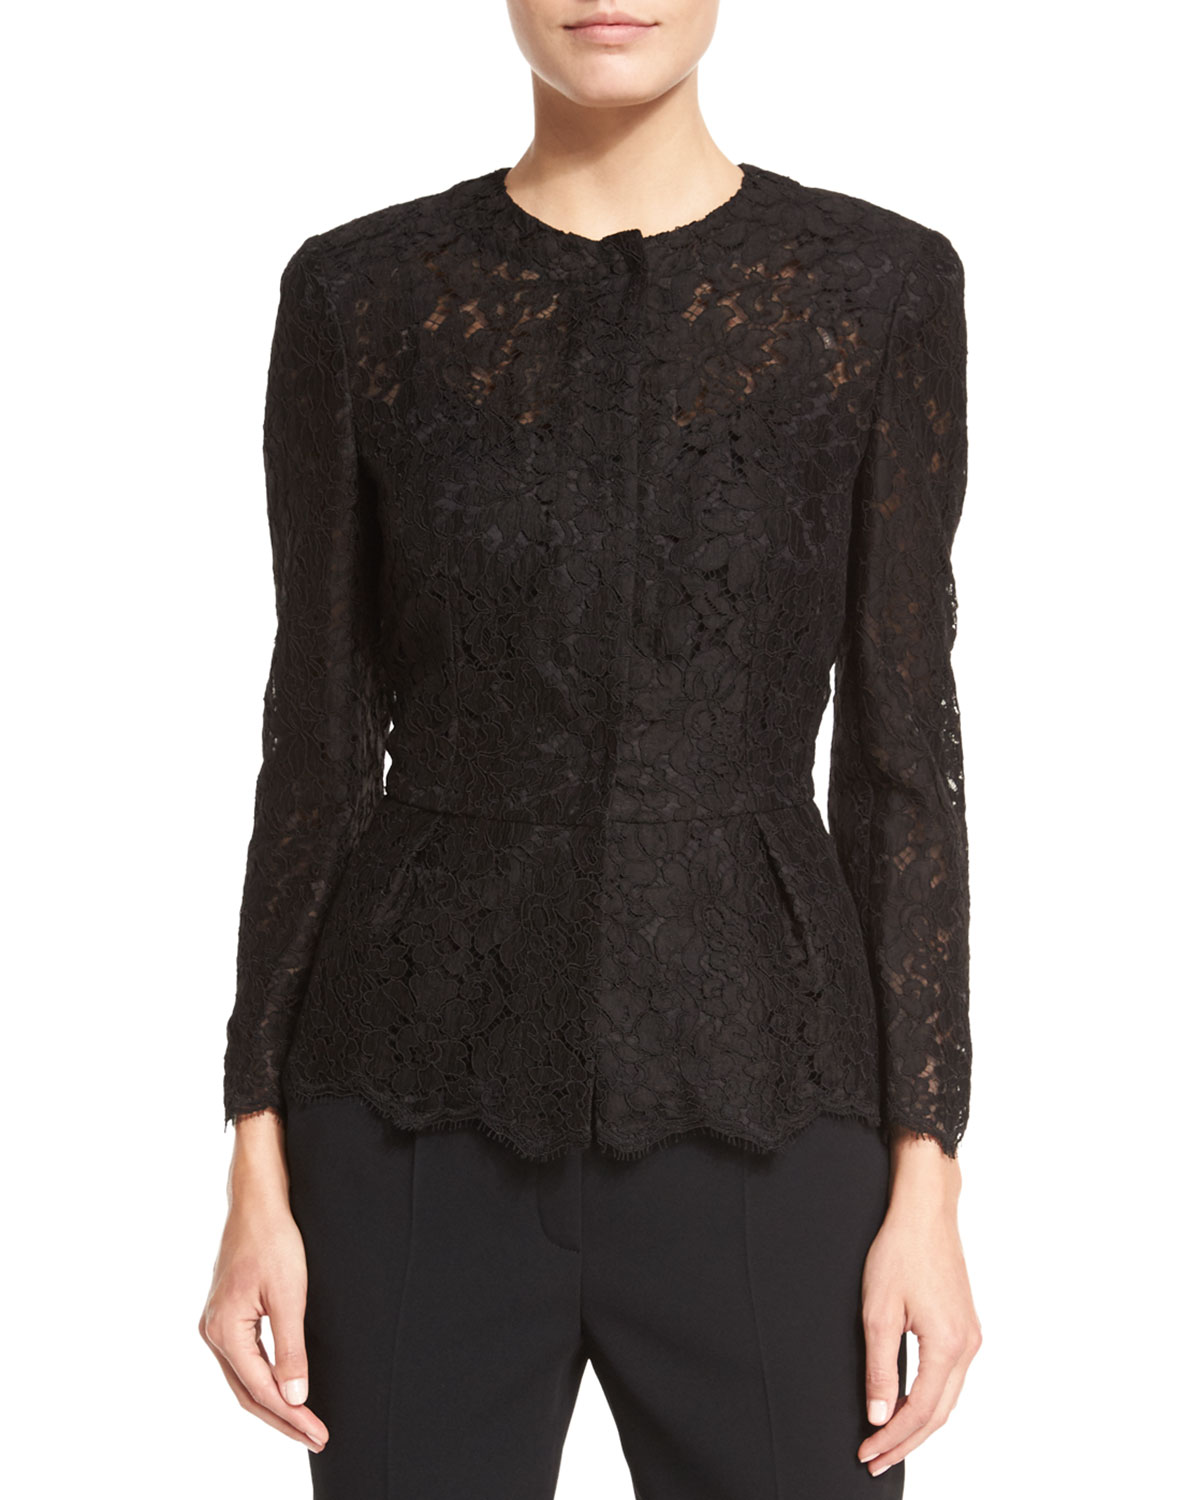 Swiss-Lace Peplum Jacket, Black